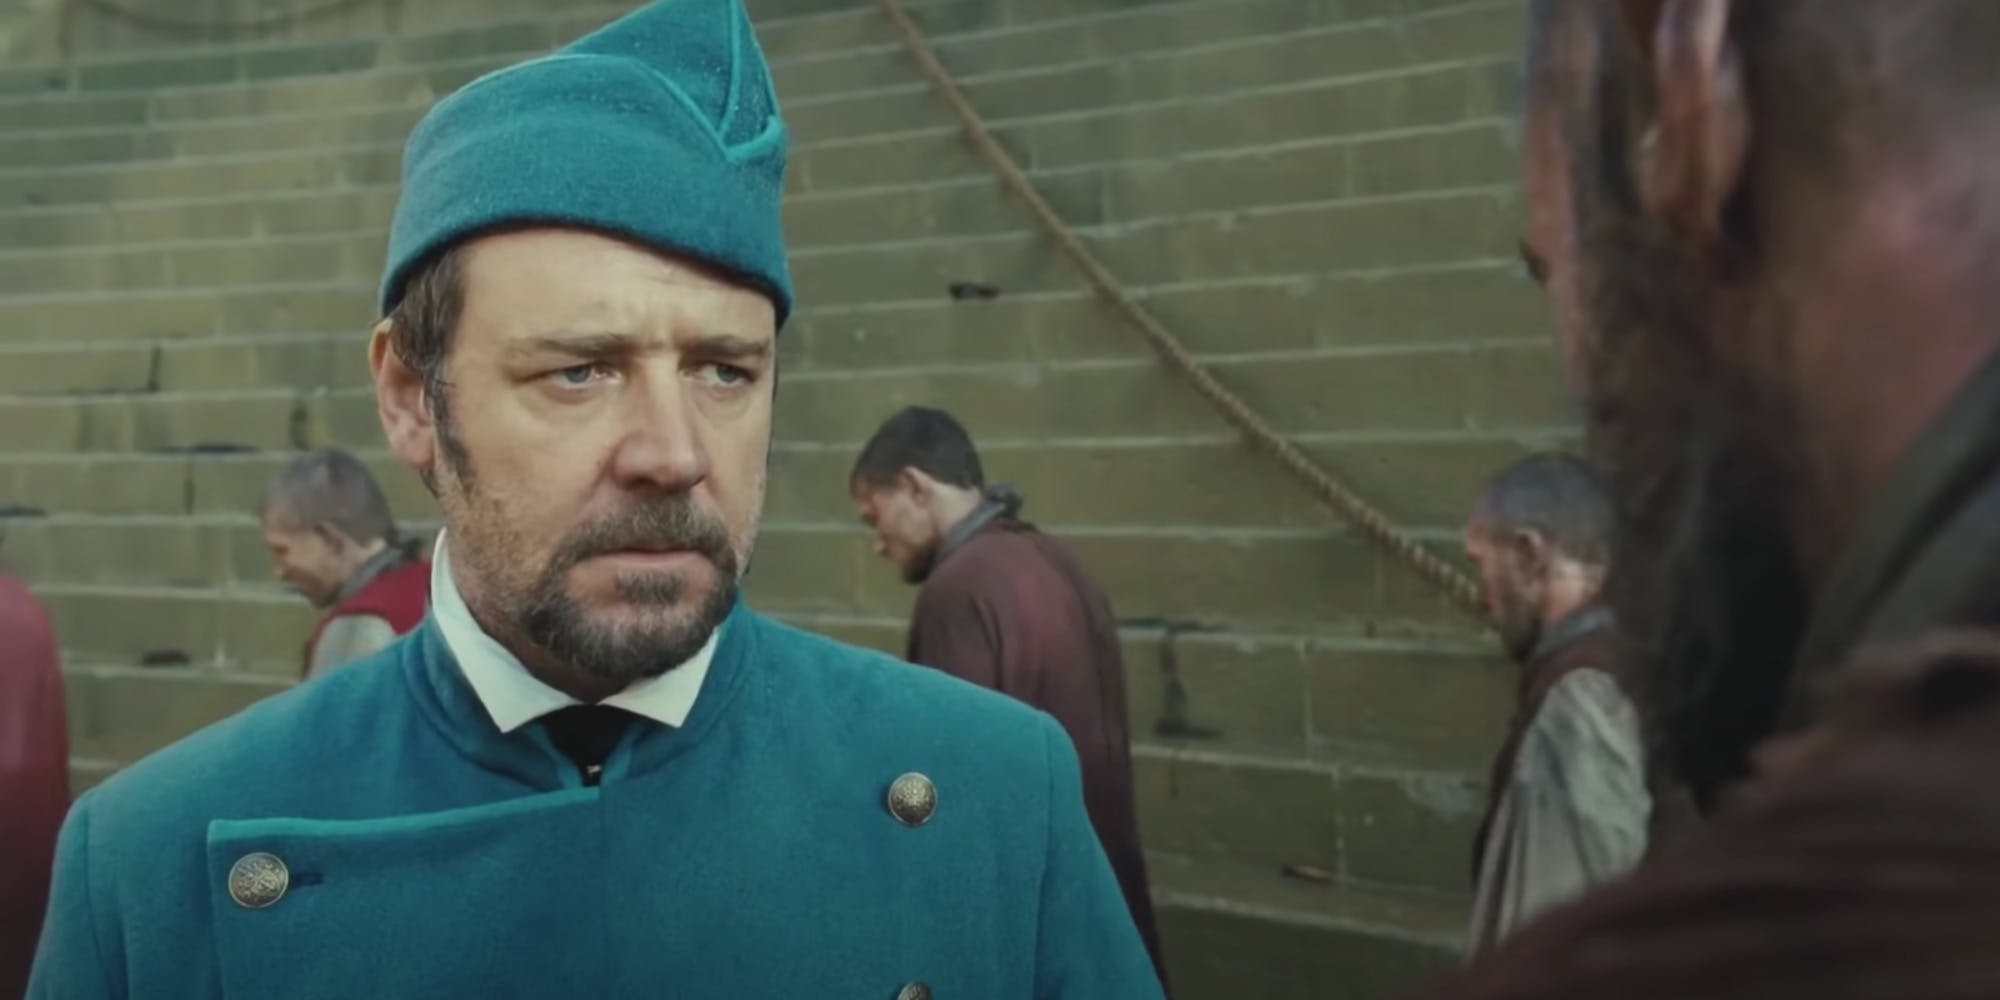 Still of Russell Crowe in Les Misérables, the movie based on the Victor Hugo novel.